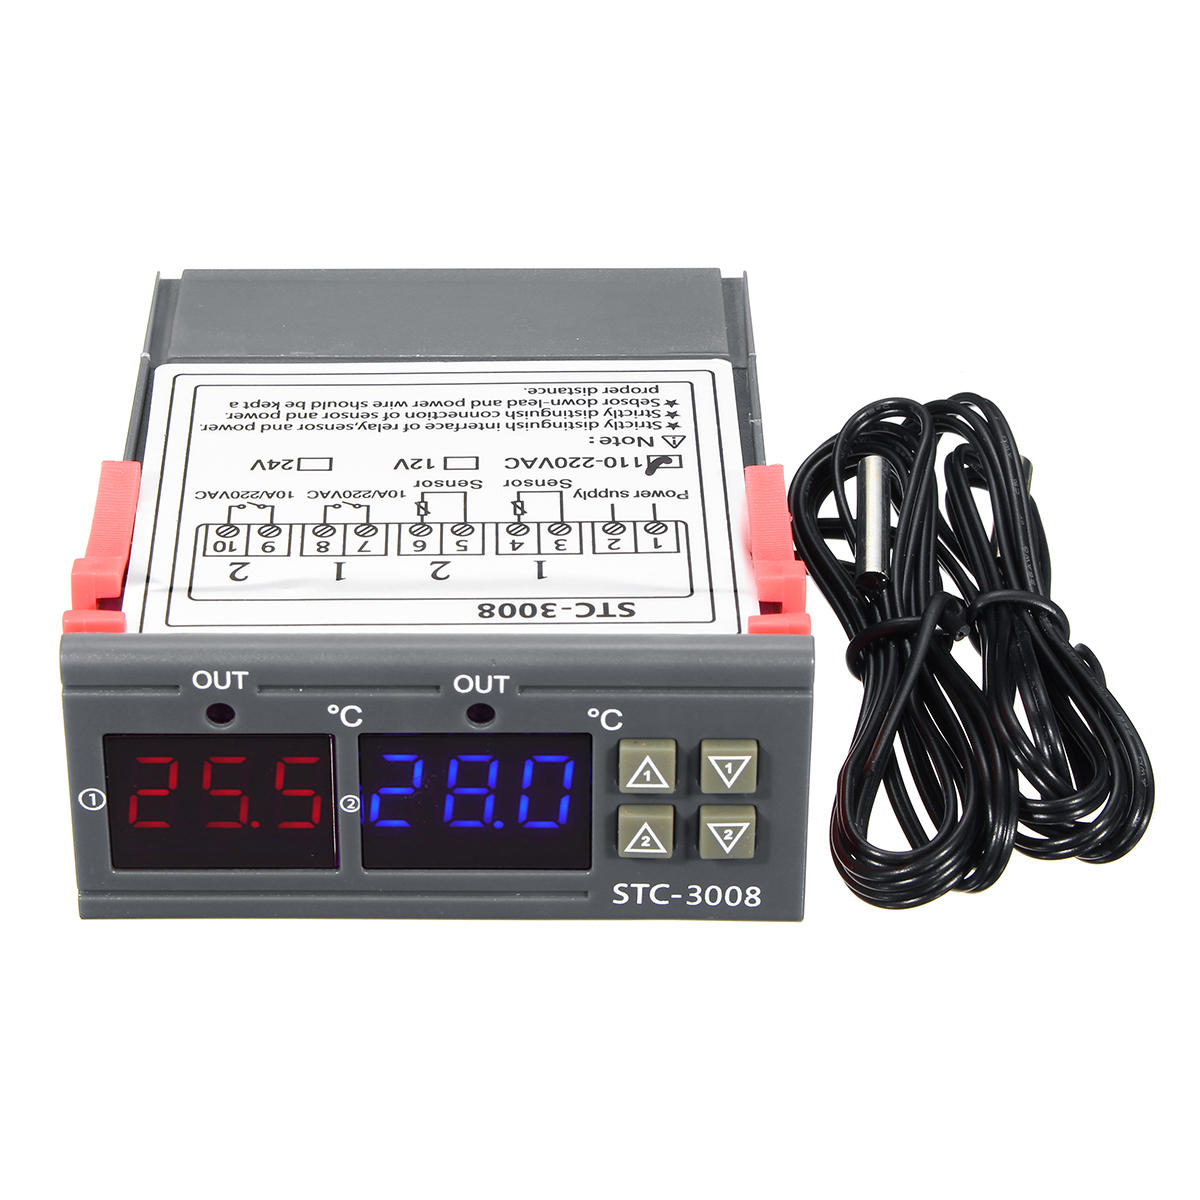 110-220V STC-3028 Dispaly Temperature Humidity Thermostat Controller Temperature Humidity Control Thermometer Hygrometer